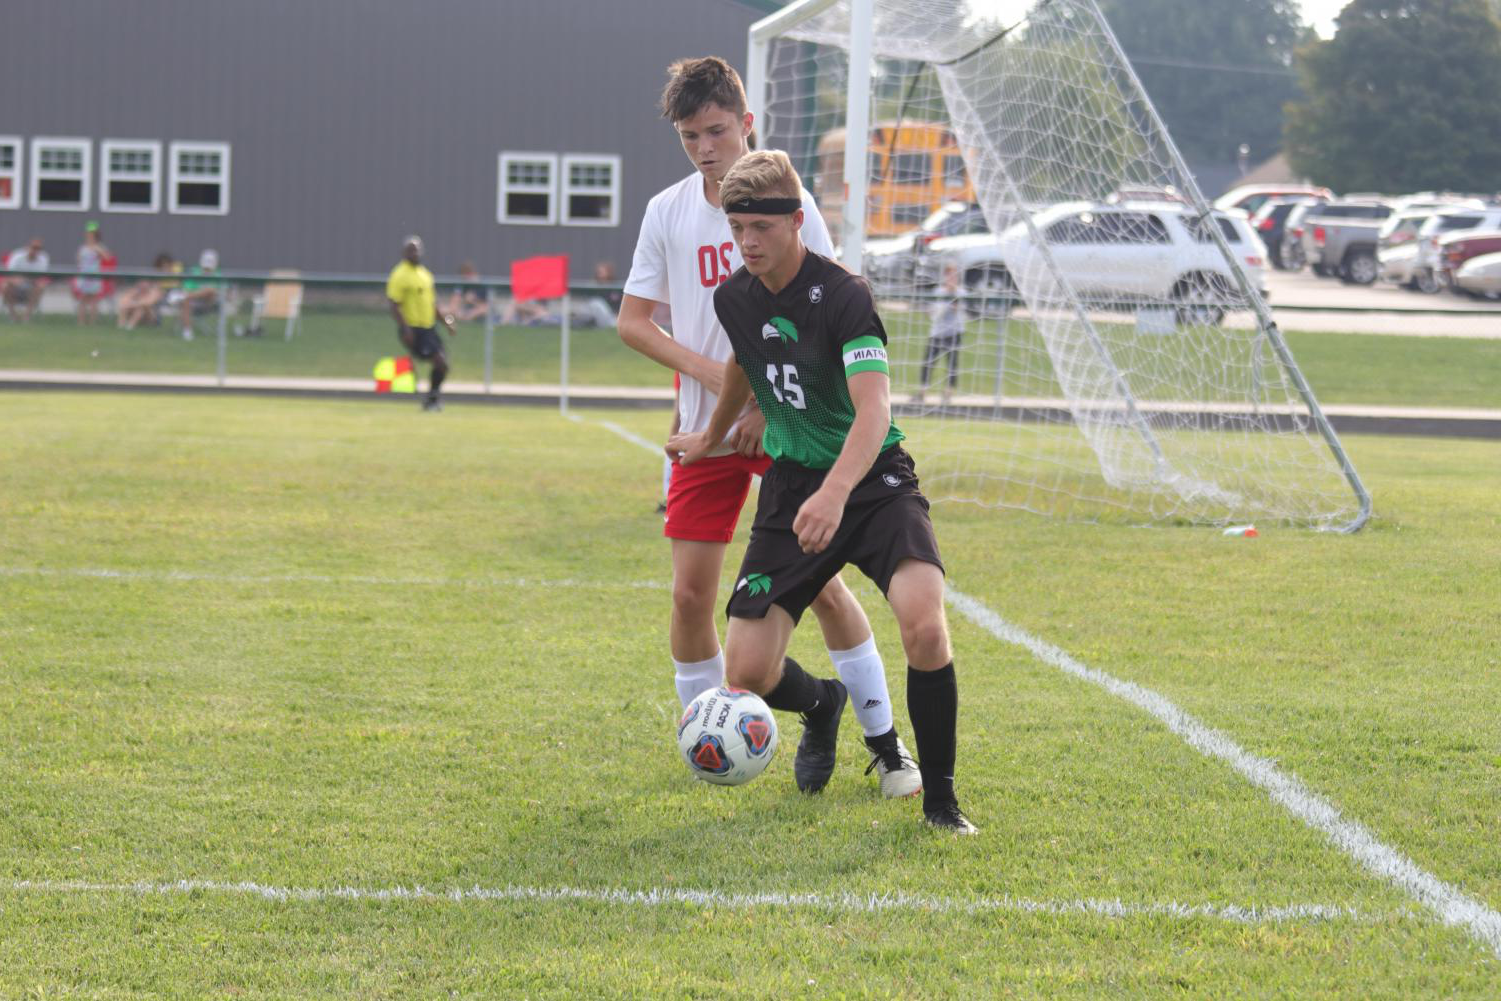 On September 10, the boys soccer team defeated Arthur Lovington Atwood Hammond 5-2.